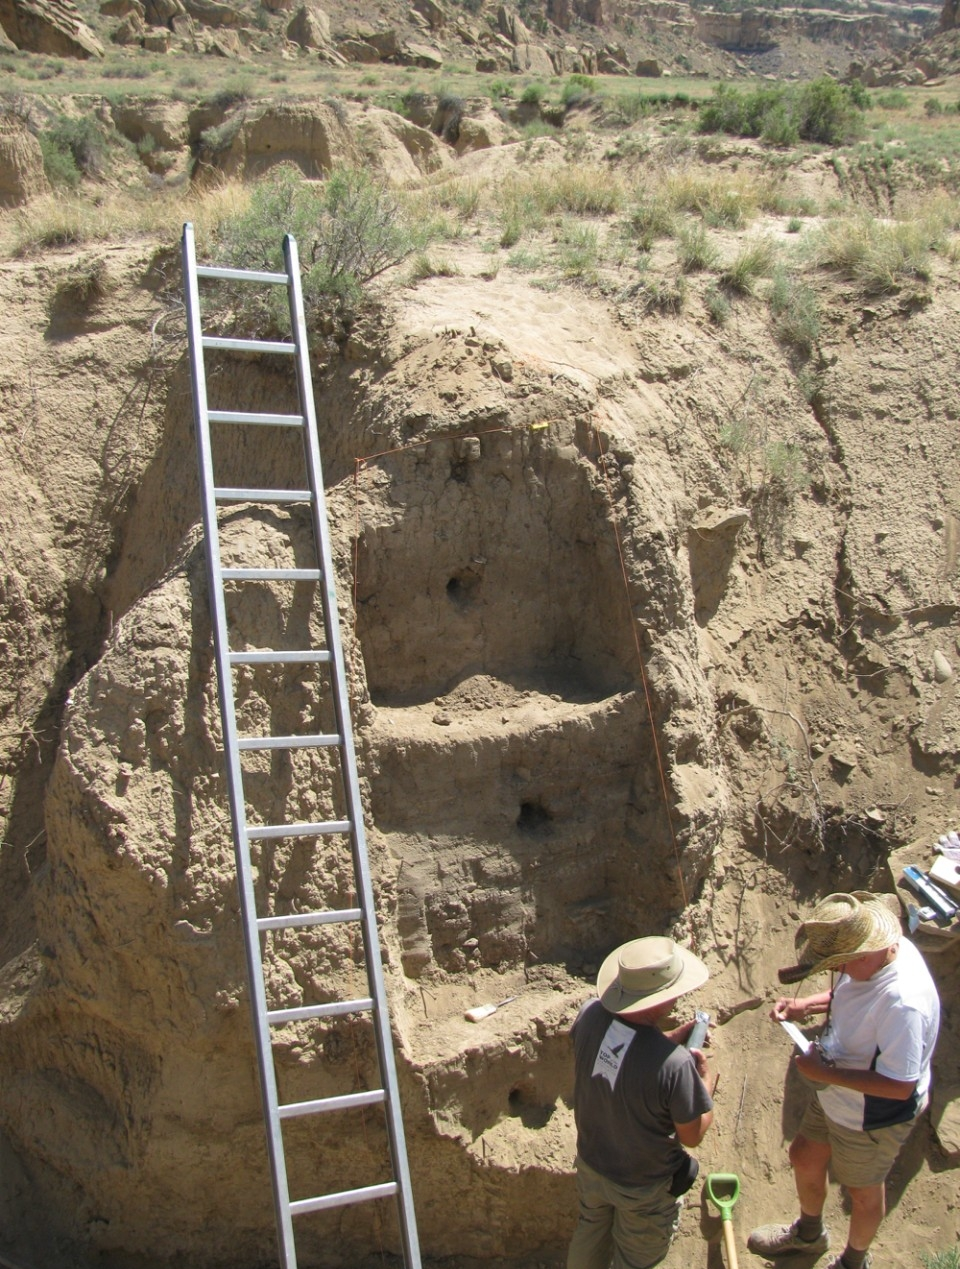 UC professors Lewis Owen and Ken Tankersley stand near a ladder colleting underground soil samples in Chaco Canyon, New Mexico.